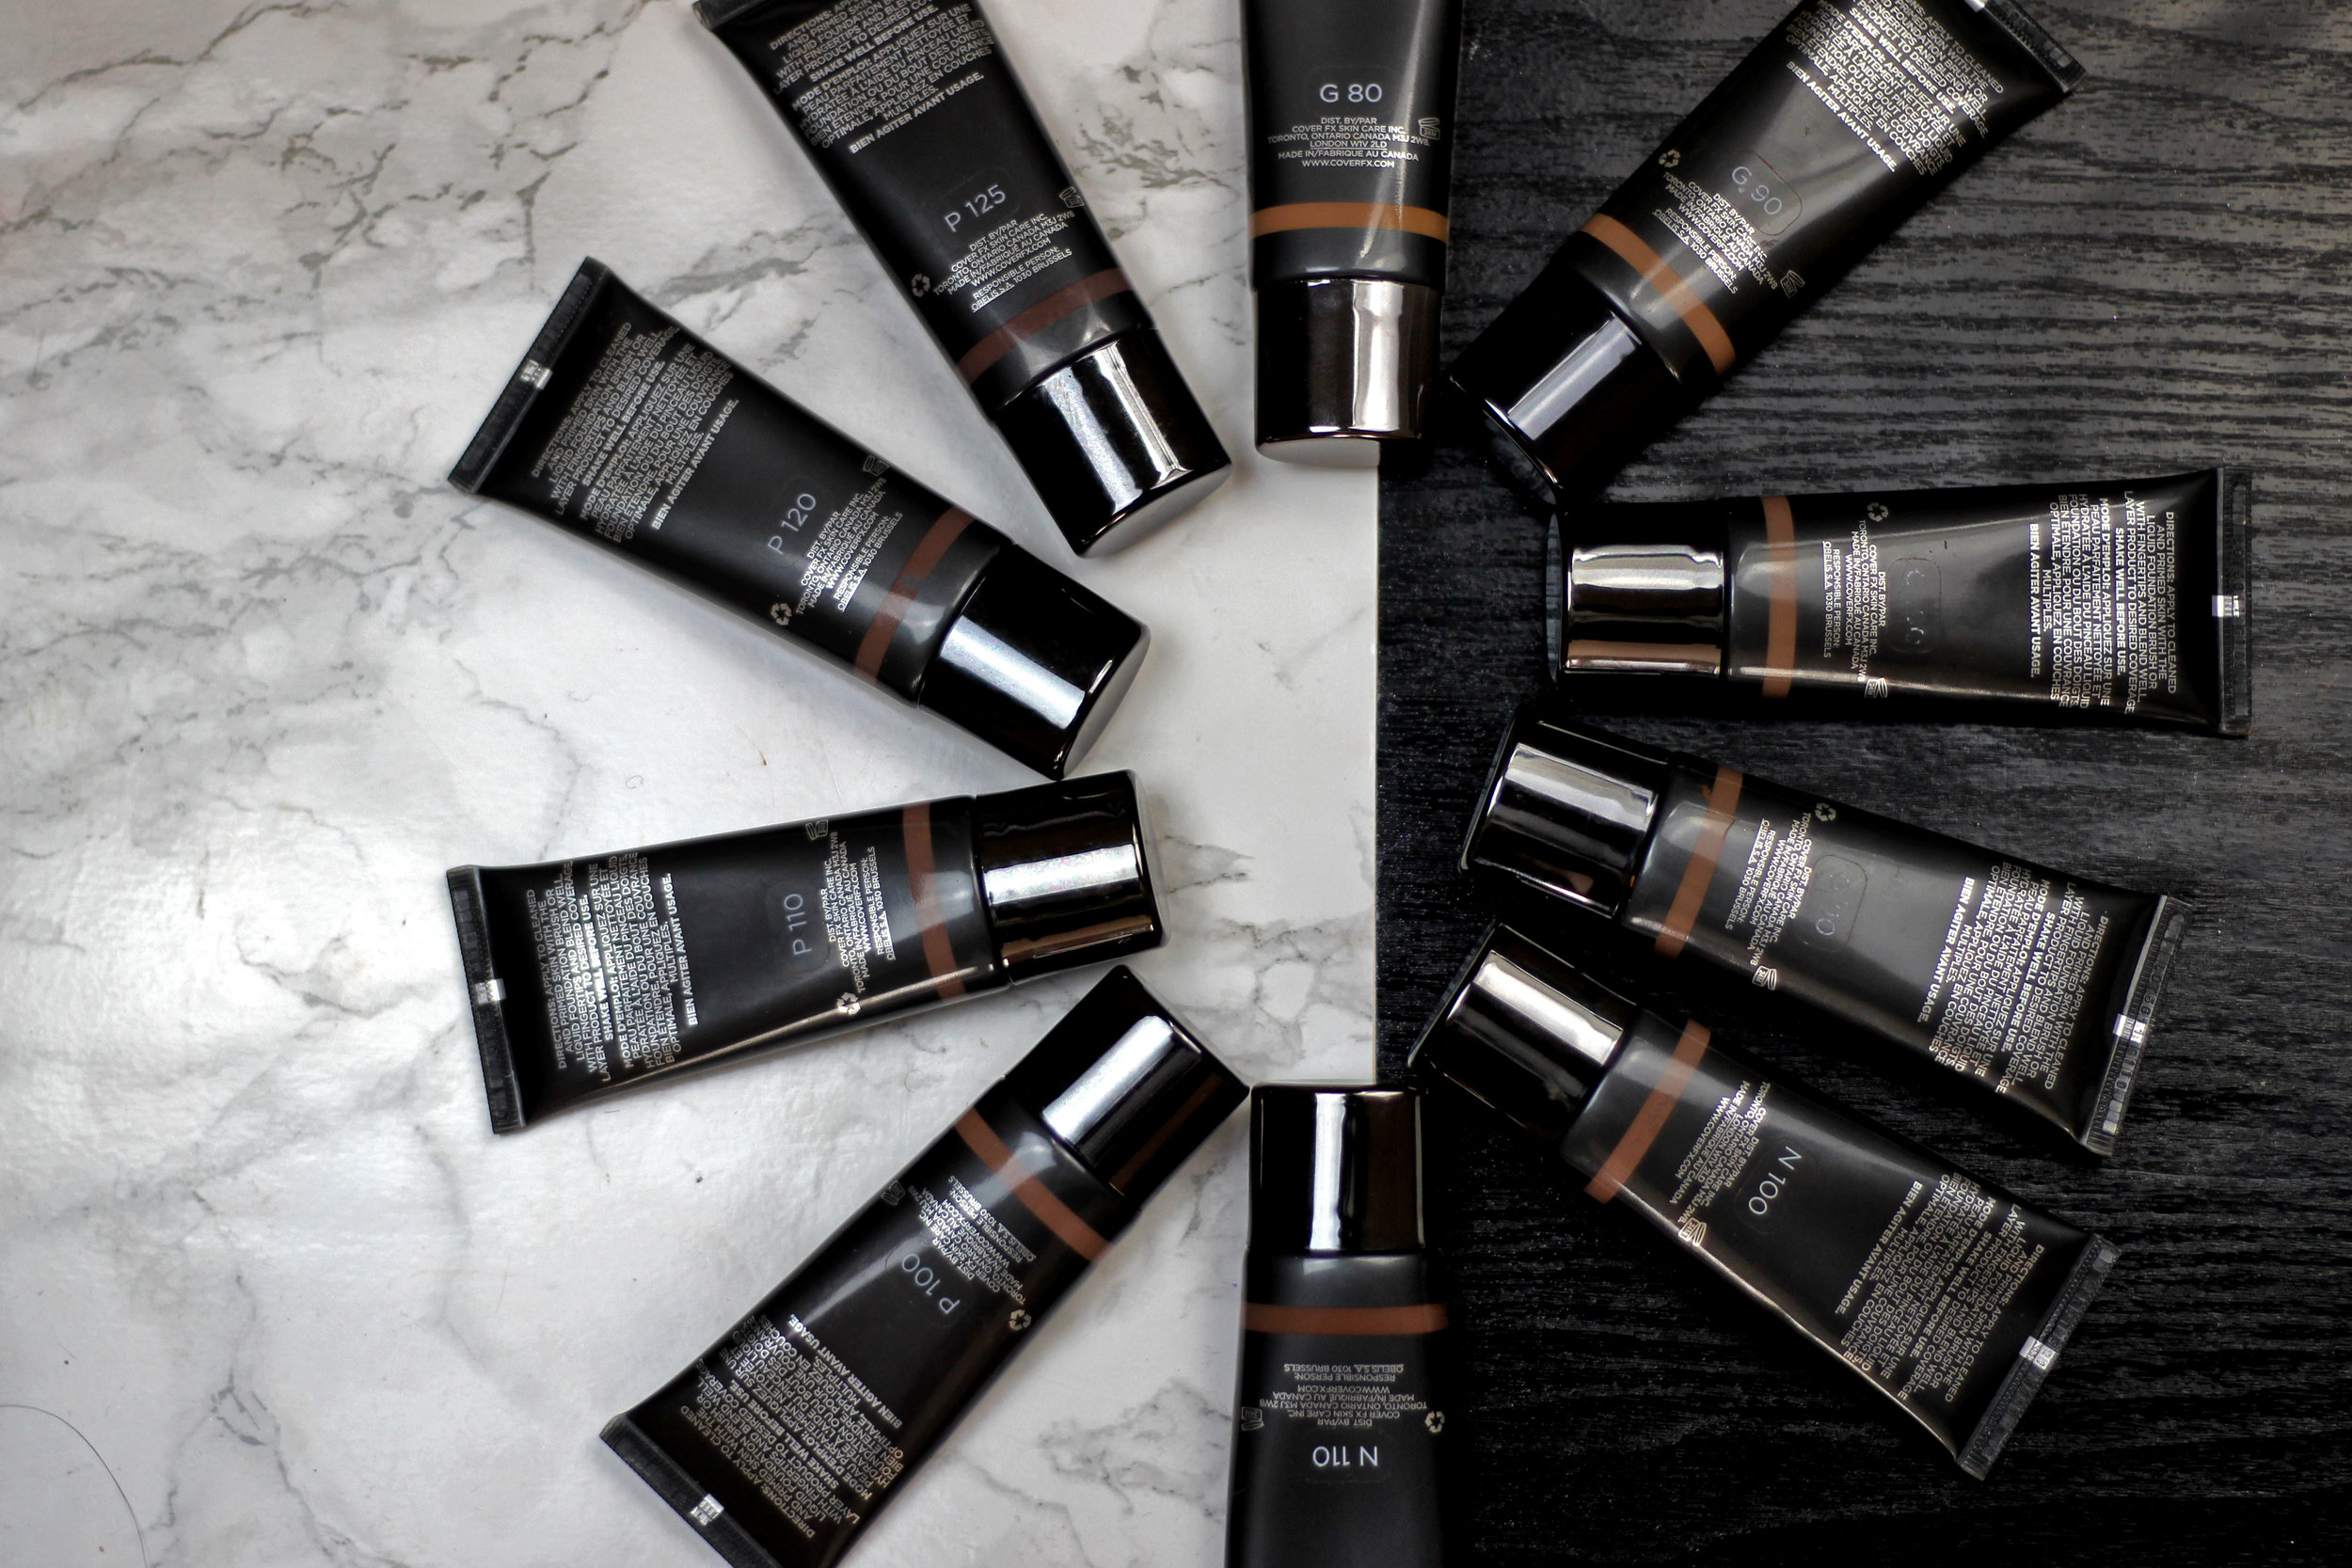 5. Cover FX - This is a brand that has an AMAZING complexion shade range so we can't wait till it hits Ulta stores. (So next time the Custom Enhancer Drops are completely sold out at Sephora, we have a second option!)